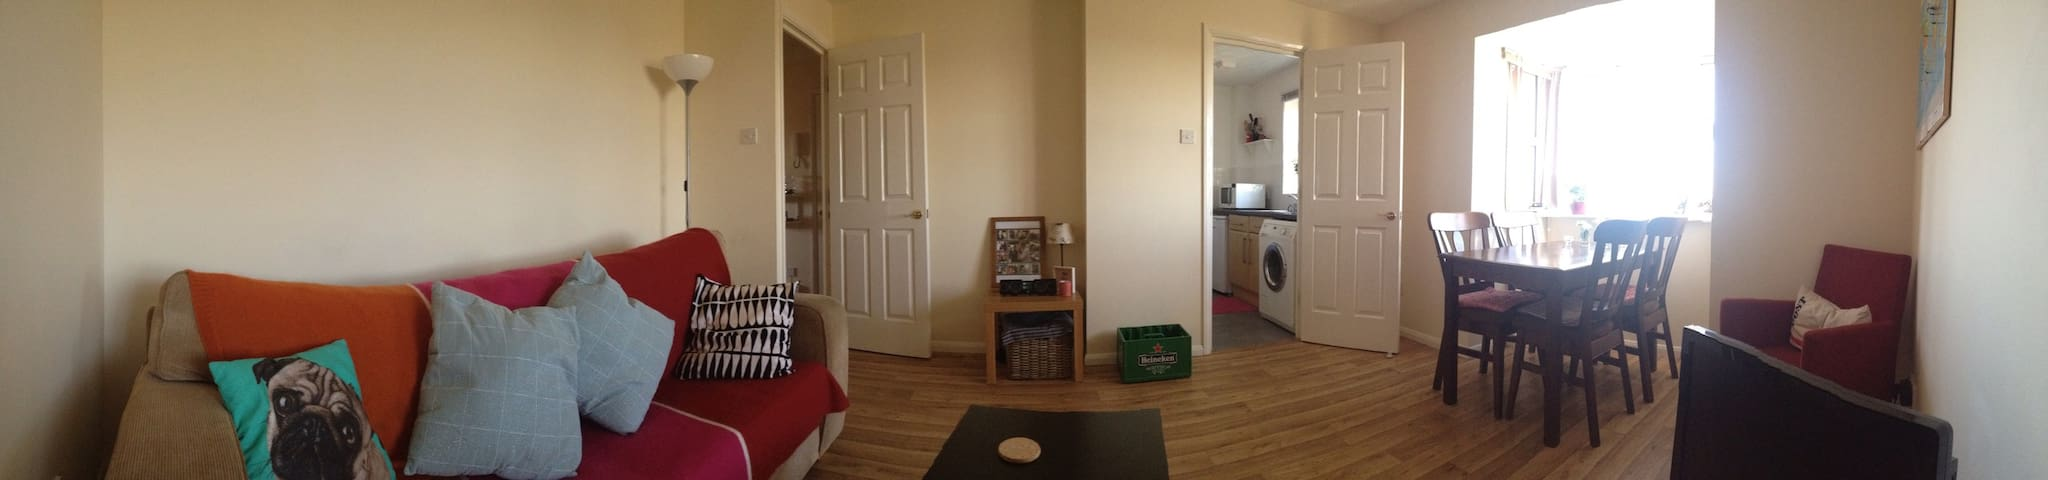 Spacious flat in Biggleswade - Biggleswade - Apartment